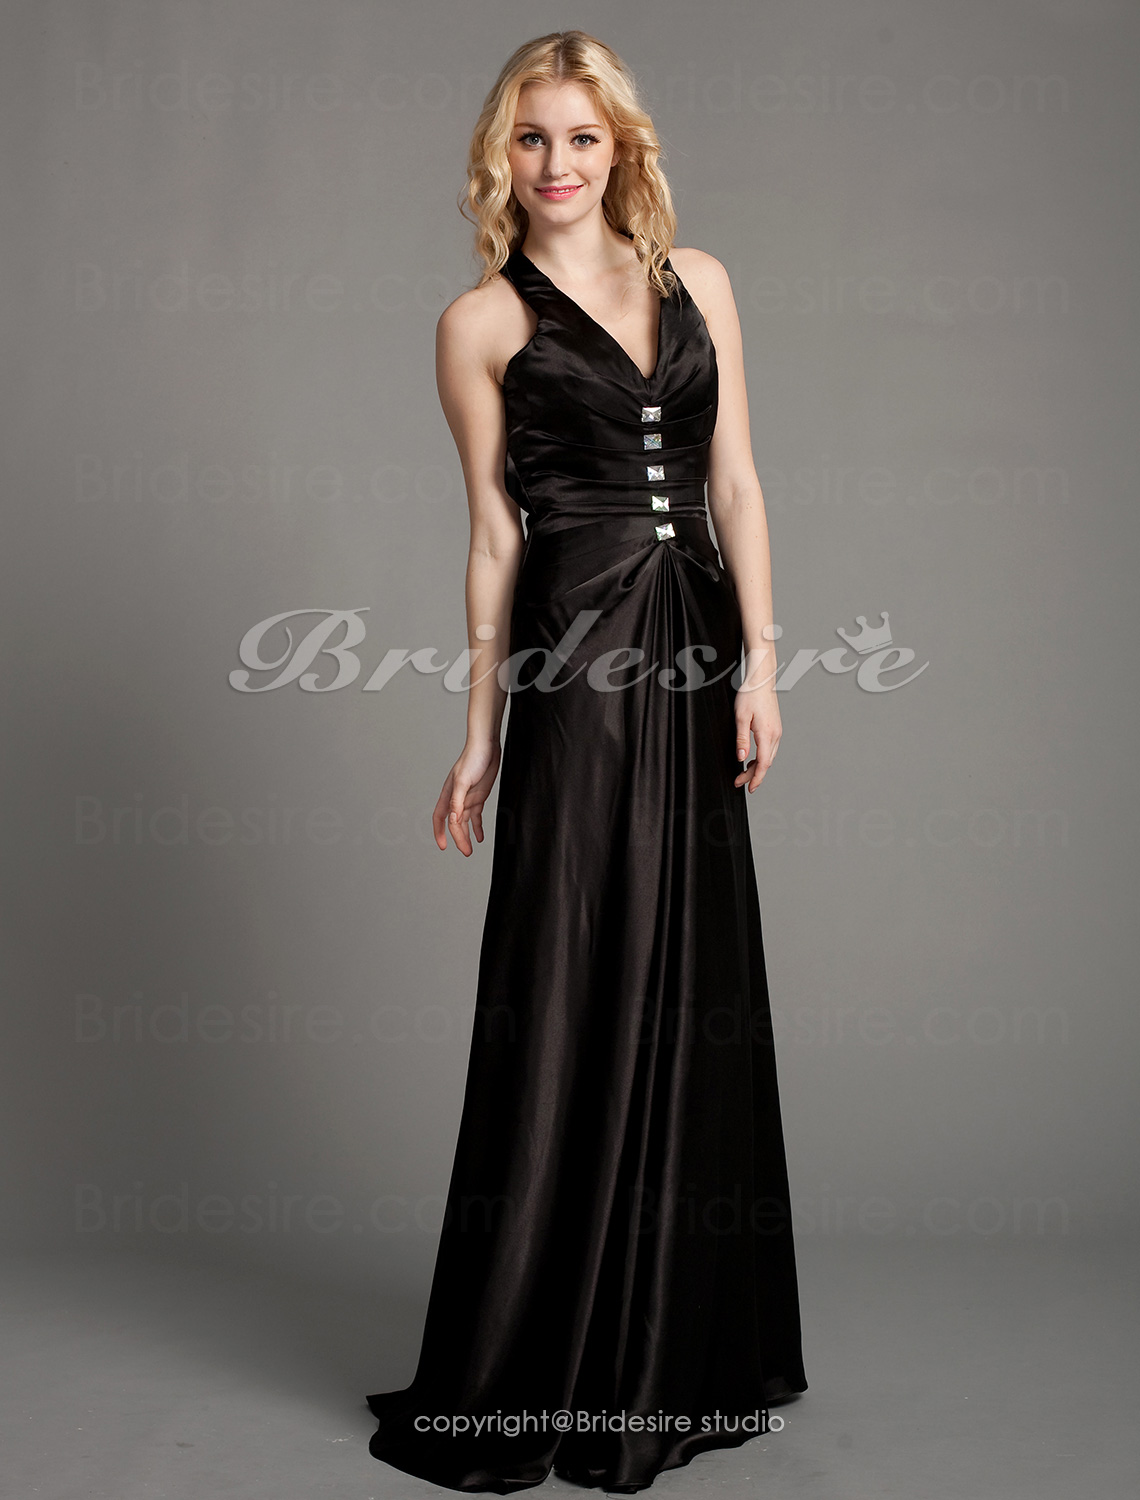 Sheath/Column Knitwear Floor-length V-neck Evening Dress